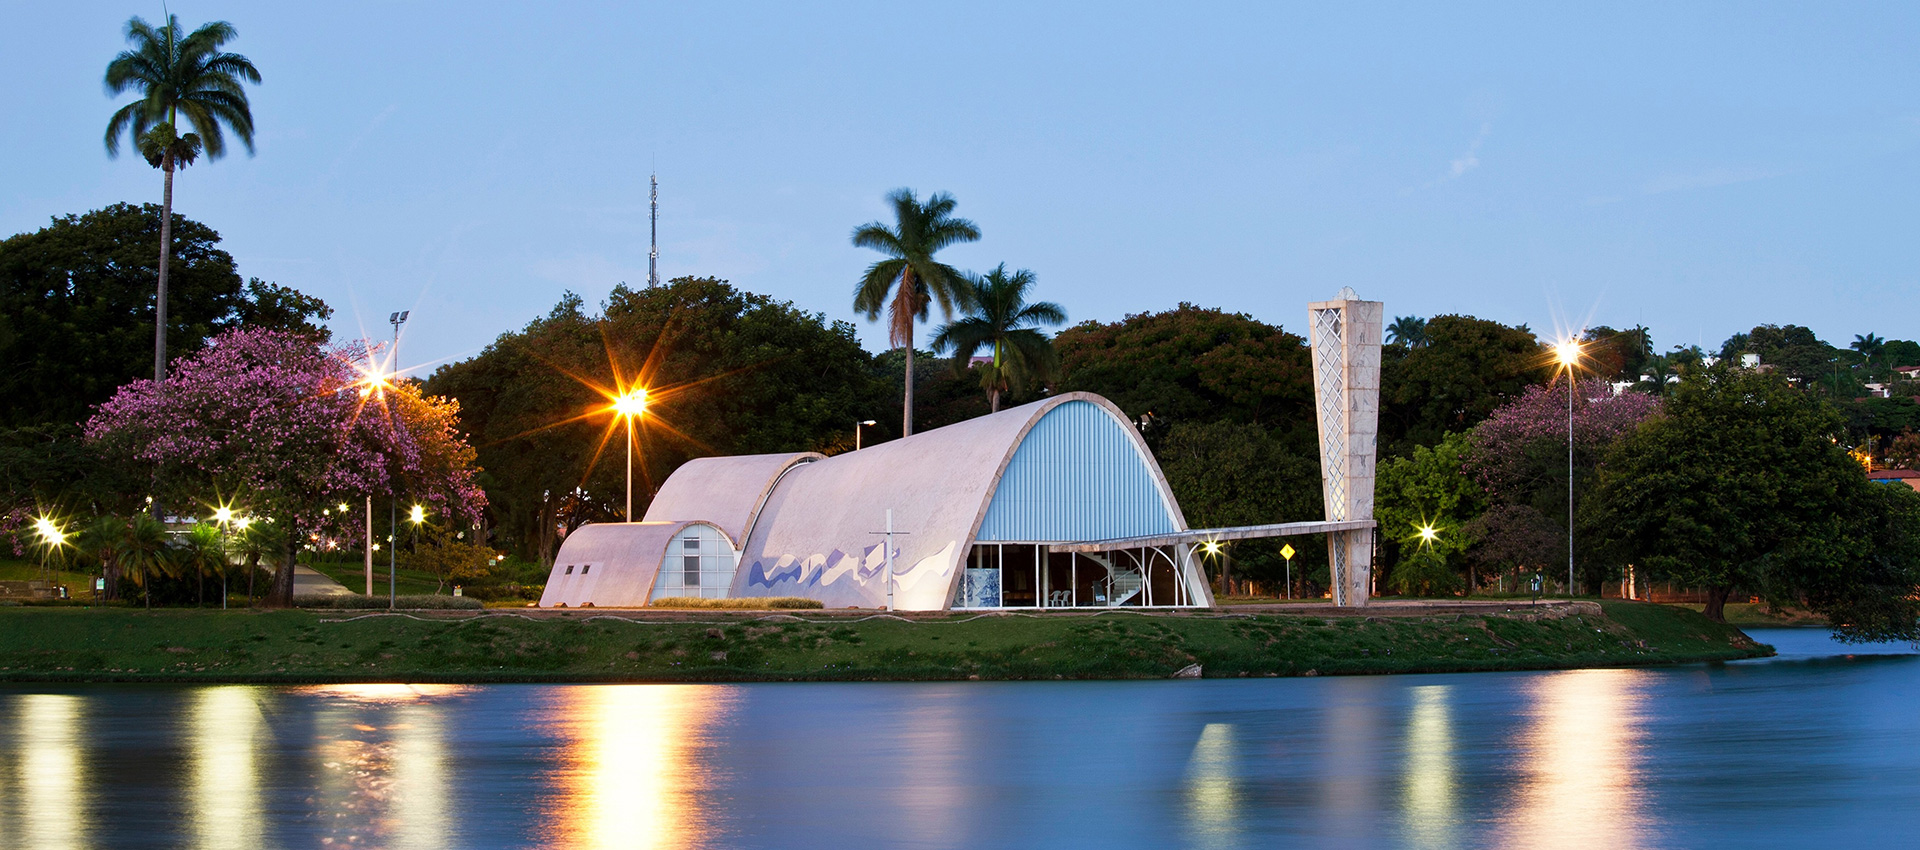 Pampulha Modern Ensemble: View of the São Francisco de Assis Church from the lagoon. Photography © Marcilio Gazzinelli